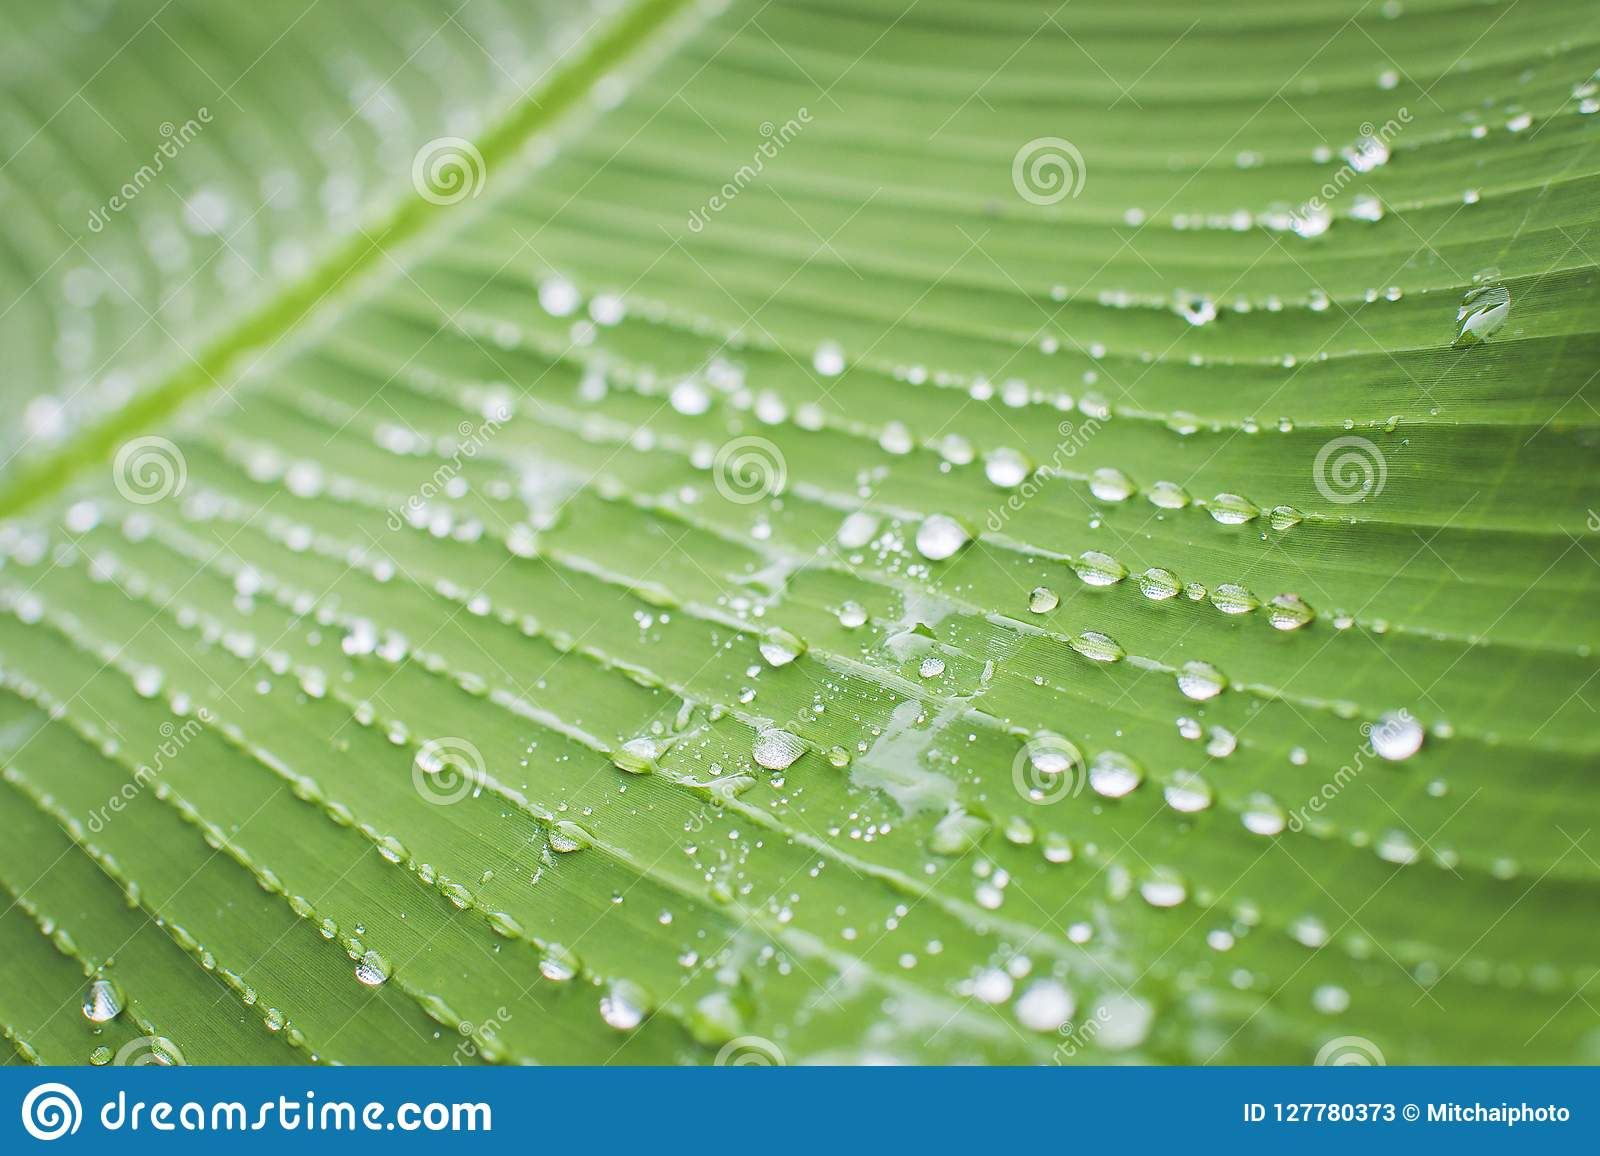 The banana leaves are wet